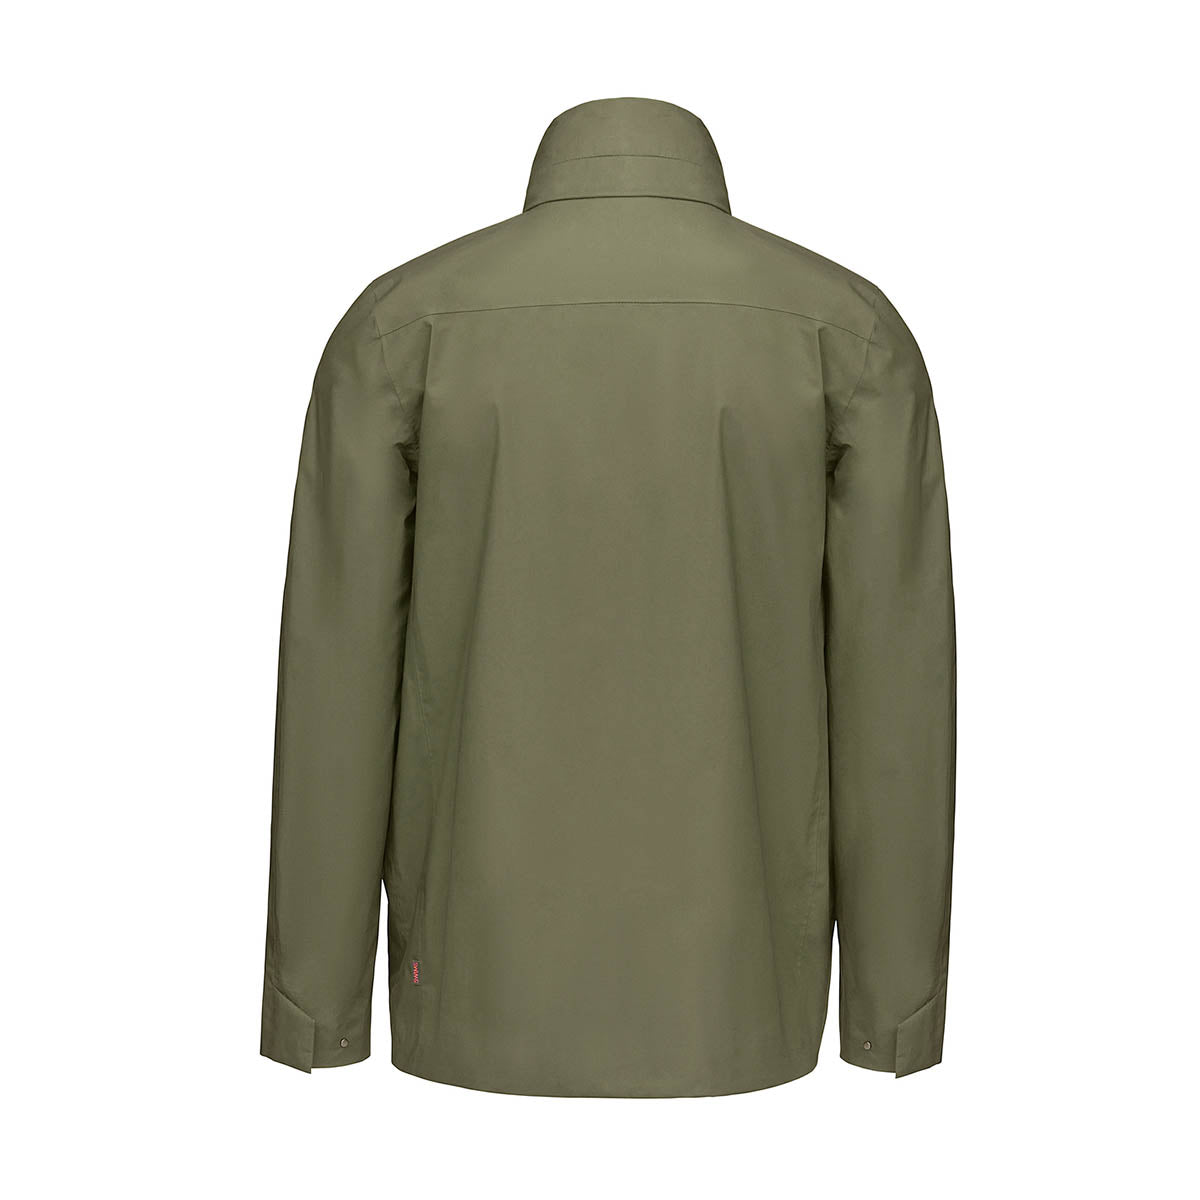 Motion Field Jacket - background::white,variant::Olive Night